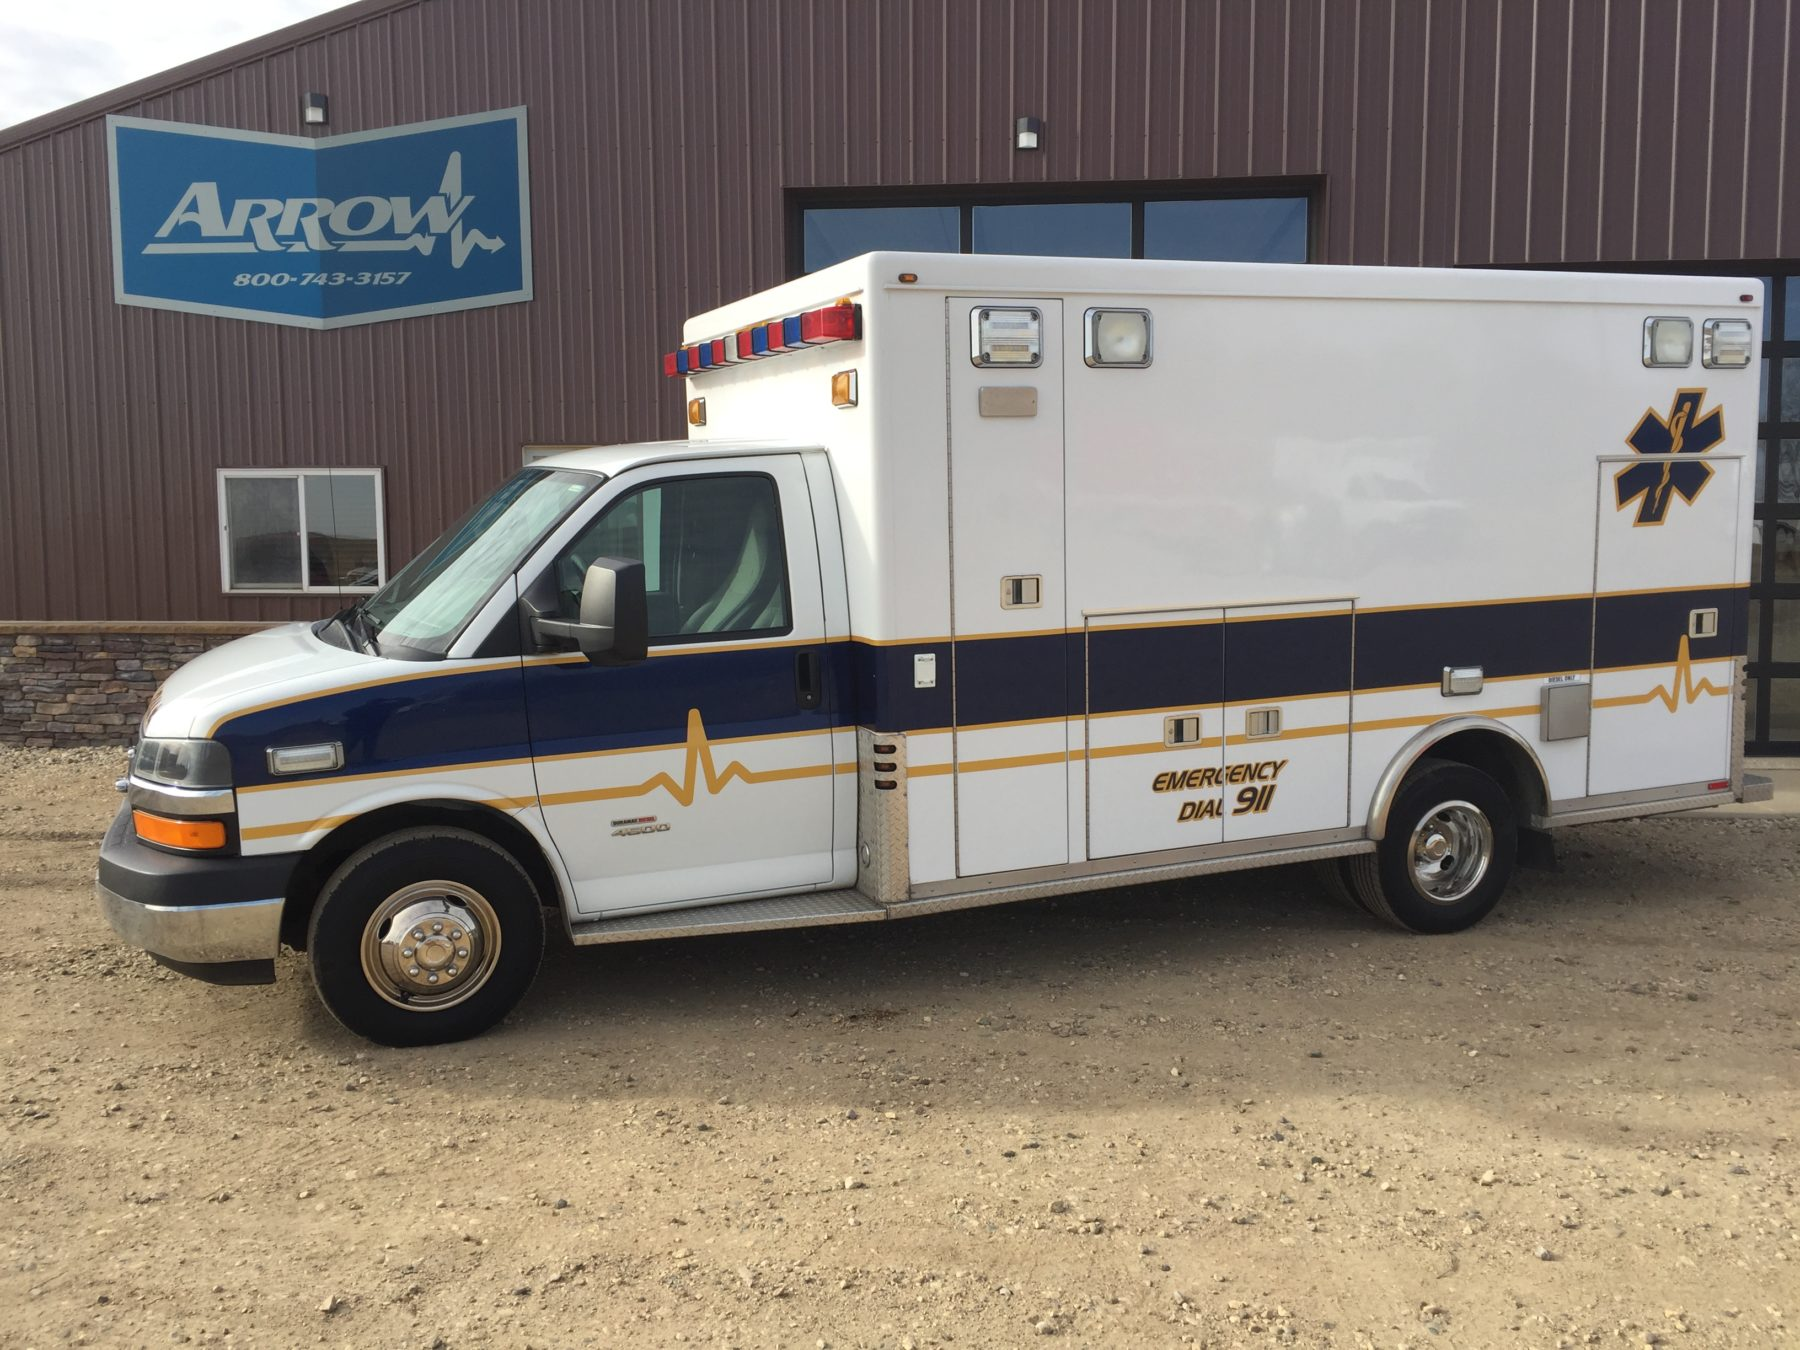 2010 Chevrolet G4500 Type 3 Ambulance For Sale – Picture 1